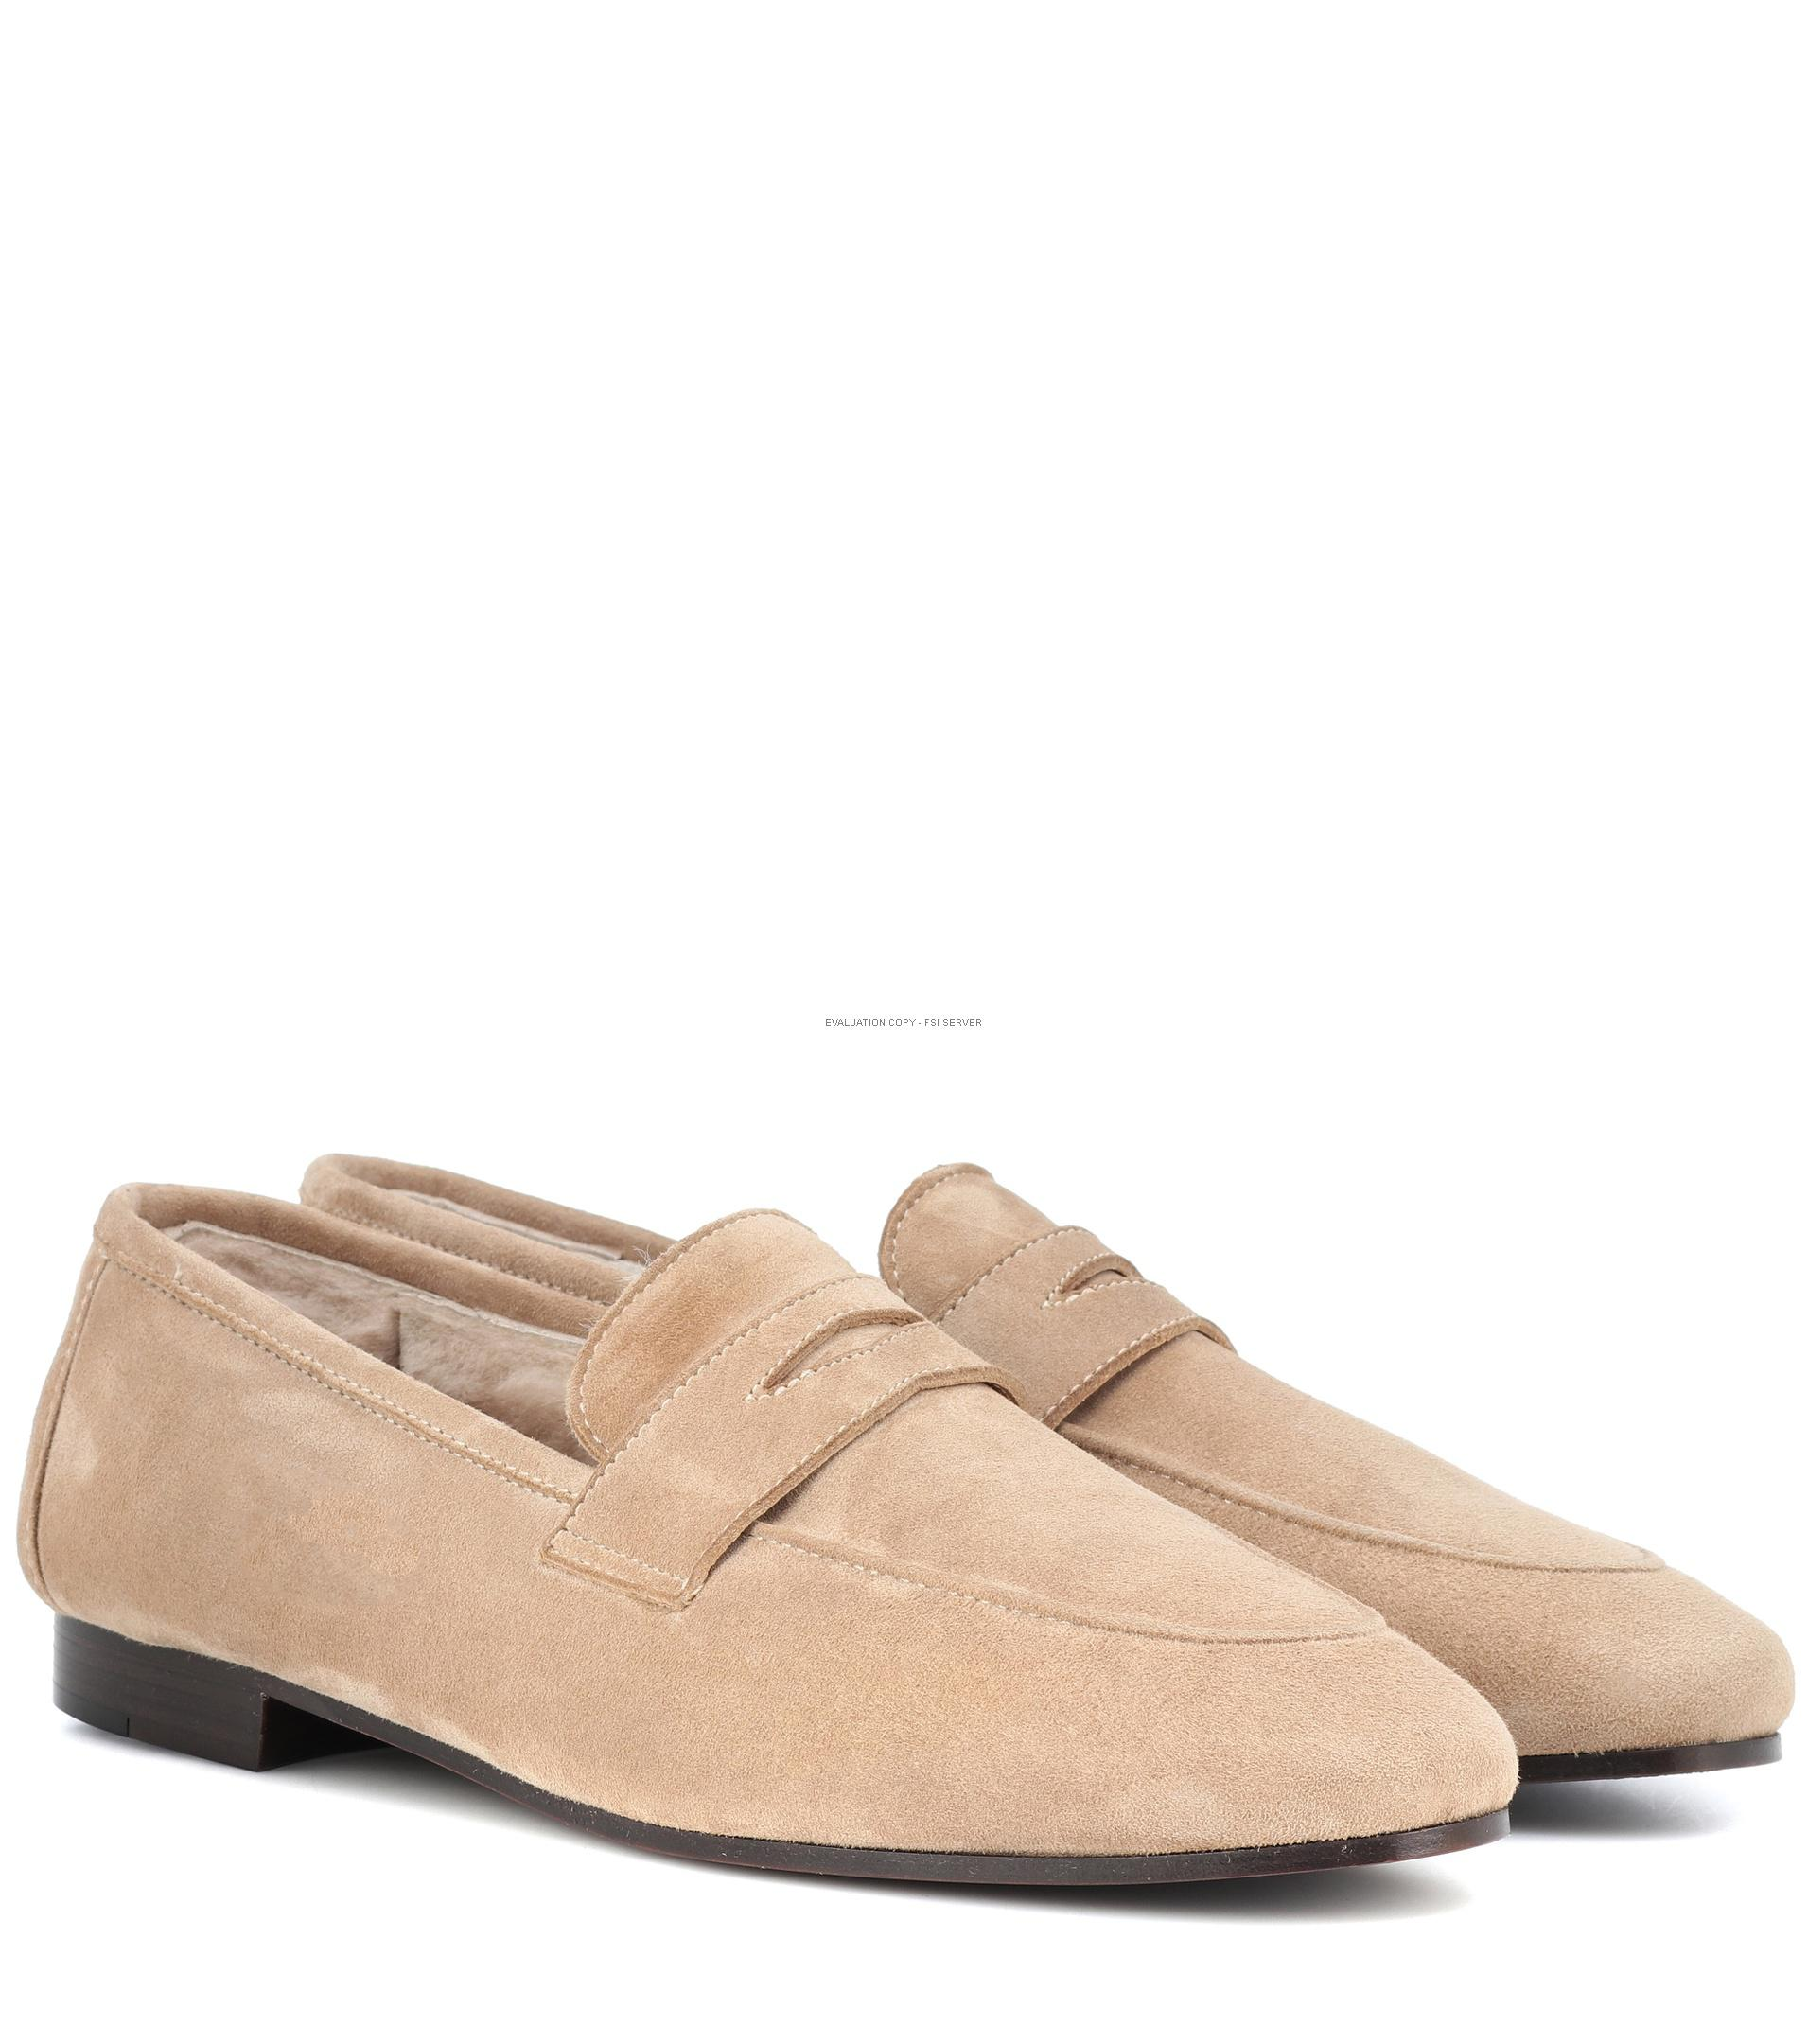 eddbd5cfbbc Bougeotte. Women s Natural Exclusive To Mytheresa – Classic Shearling-lined  Loafers